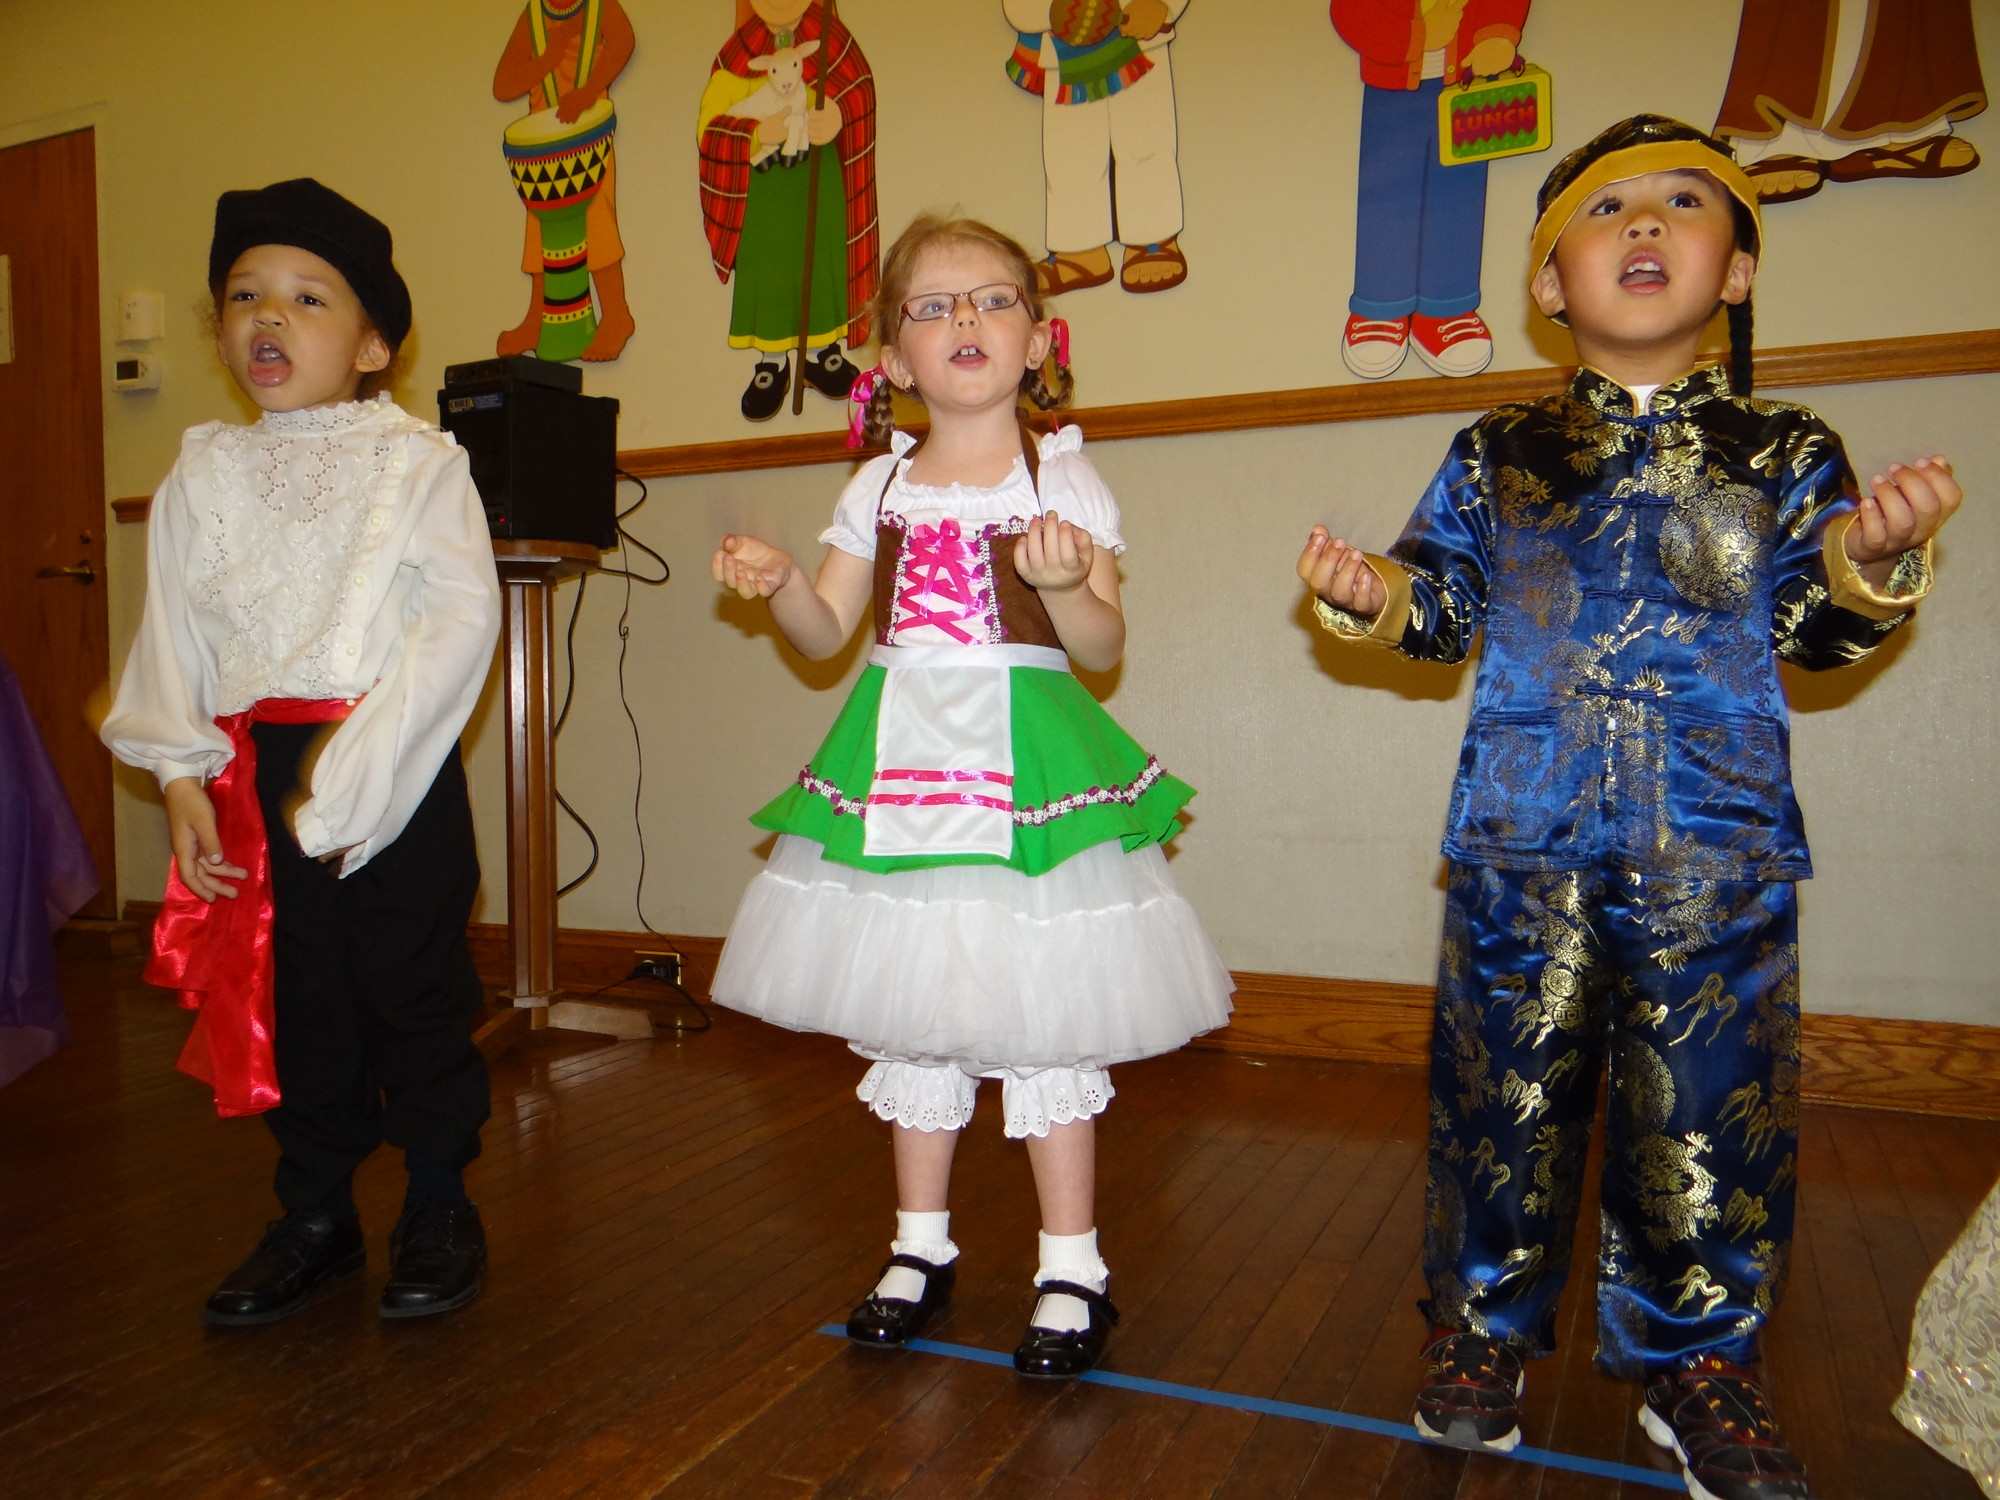 Jovan Brafman, 4, left, represented Russia, Scarlett Demmerle, 4 took on the role of Gemany, and AJ Velasco, 4, represented Japan.